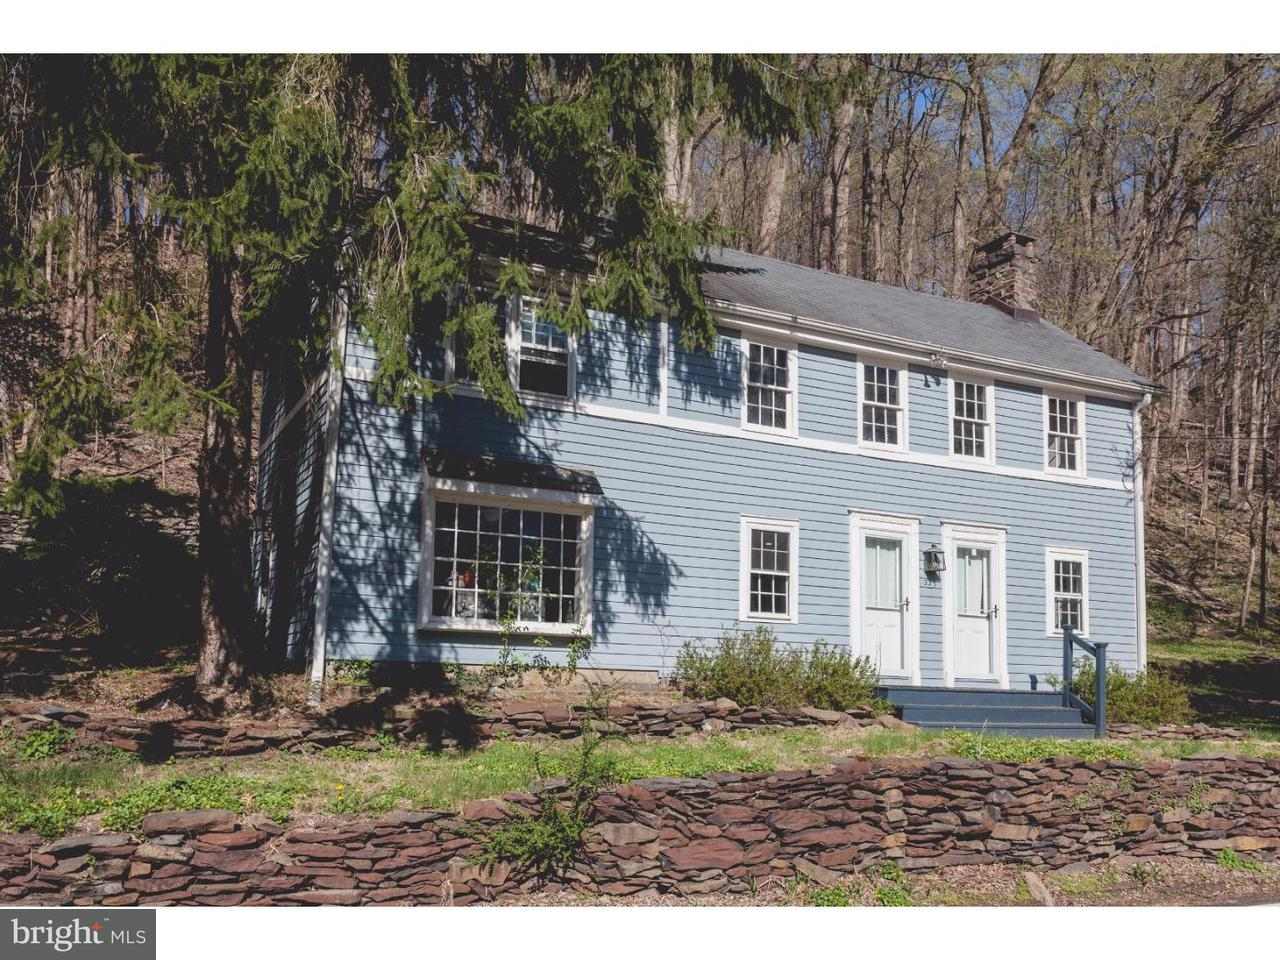 Single Family Home for Rent at 225 RIVER Road Pipersville, Pennsylvania 18947 United States